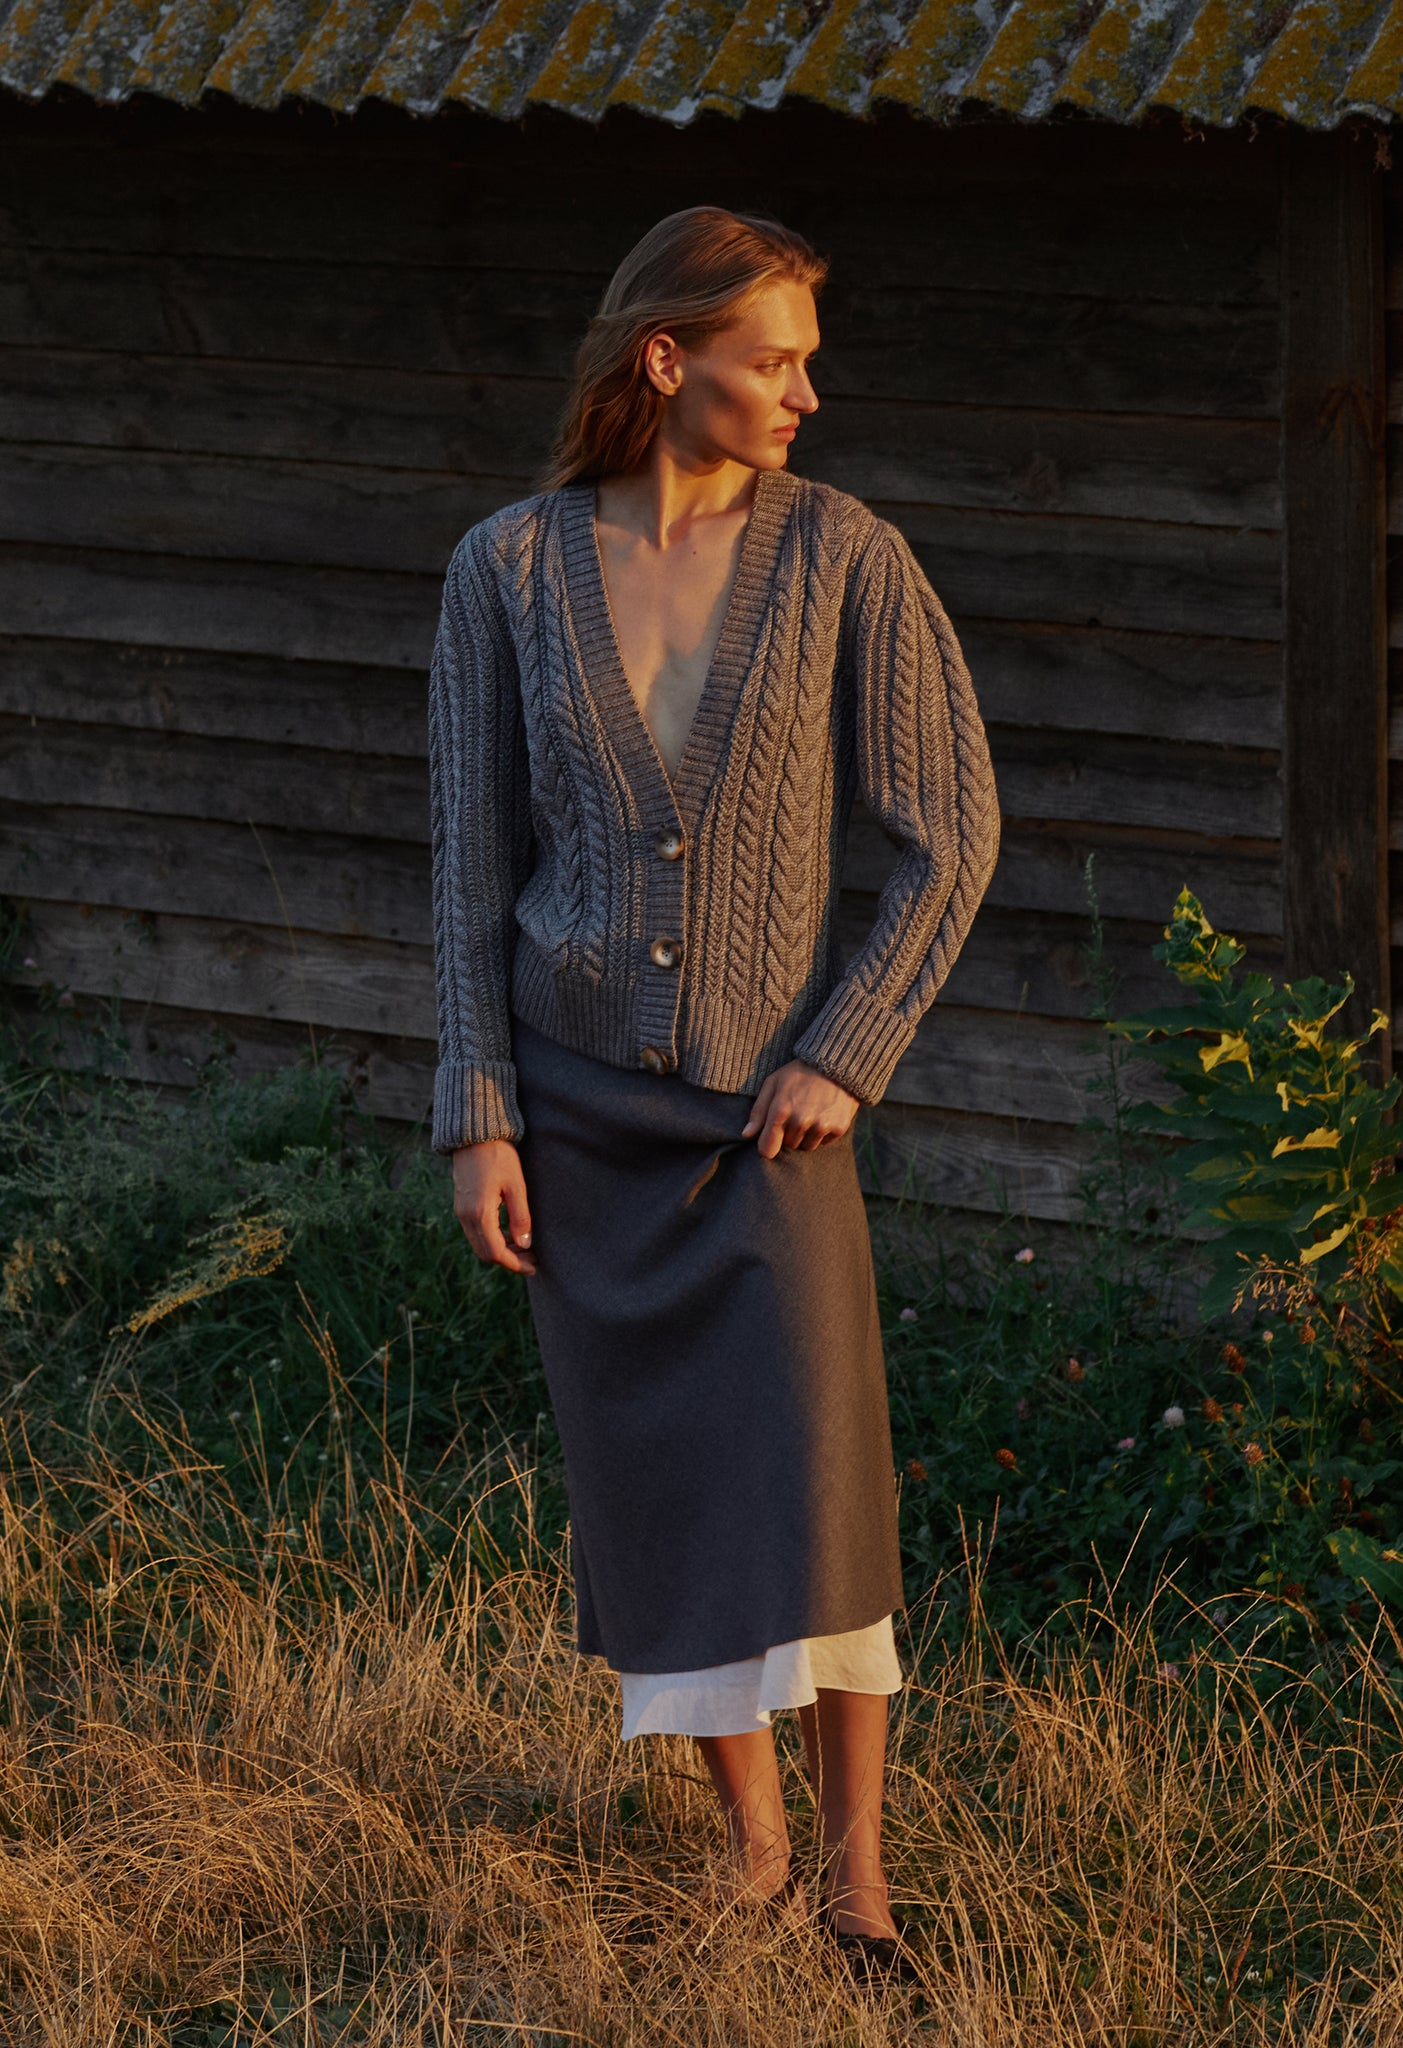 Model in Glevaha cardigan